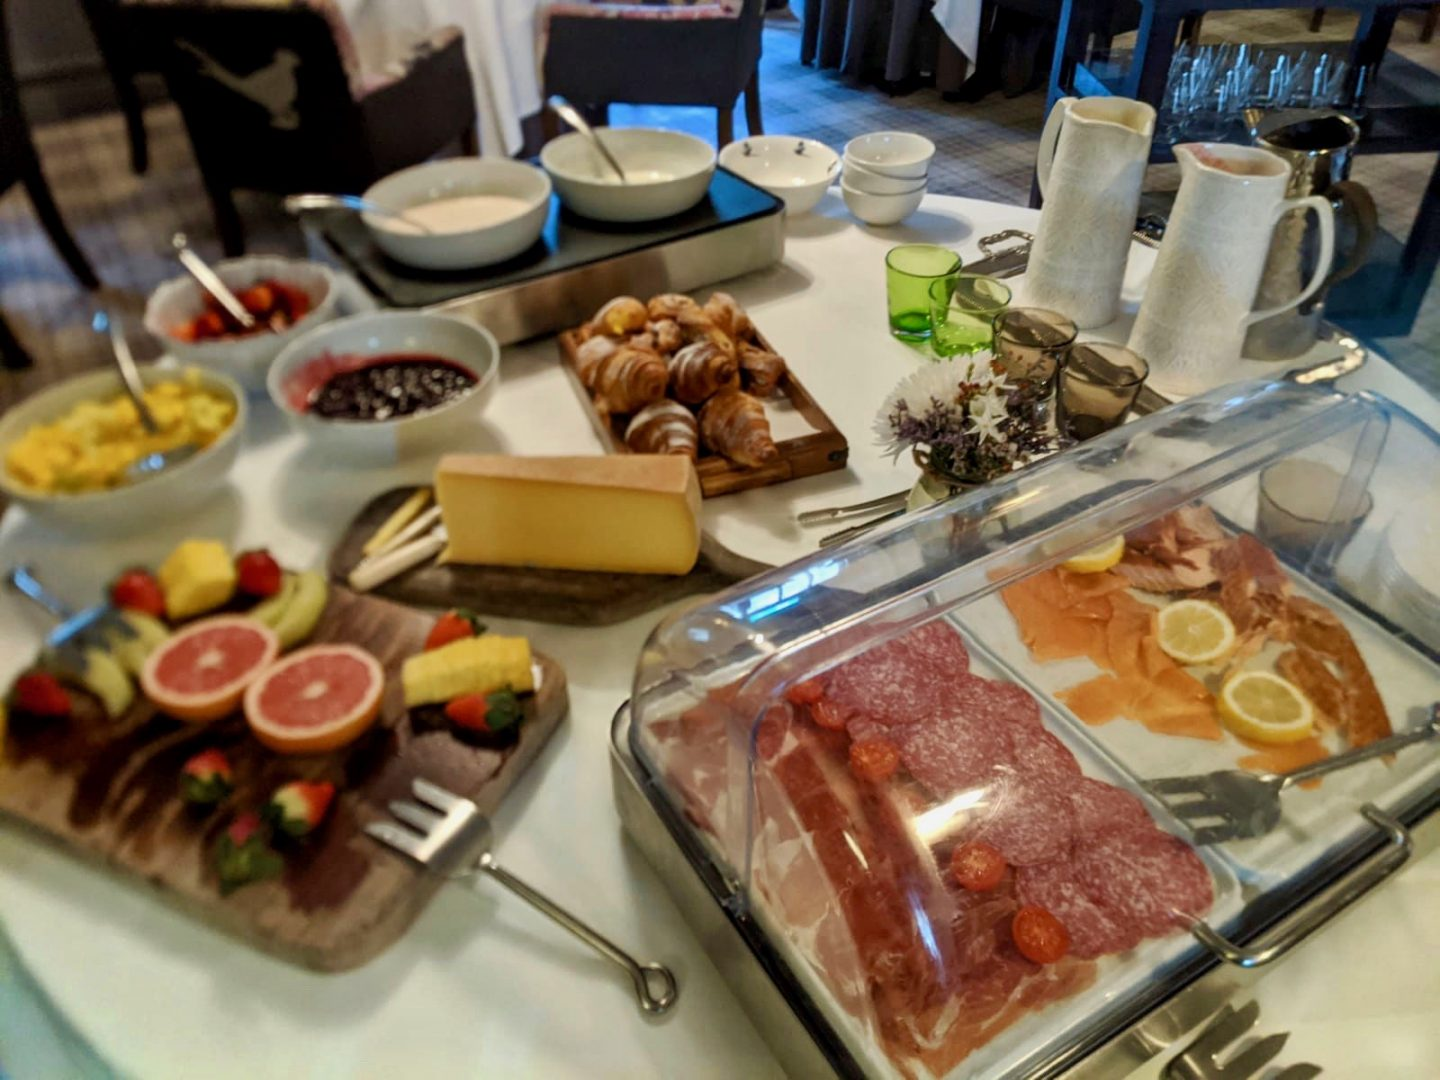 The pheasant hotel harome: breakfast buffet with hams, cheeses, fruit, pastries and juice